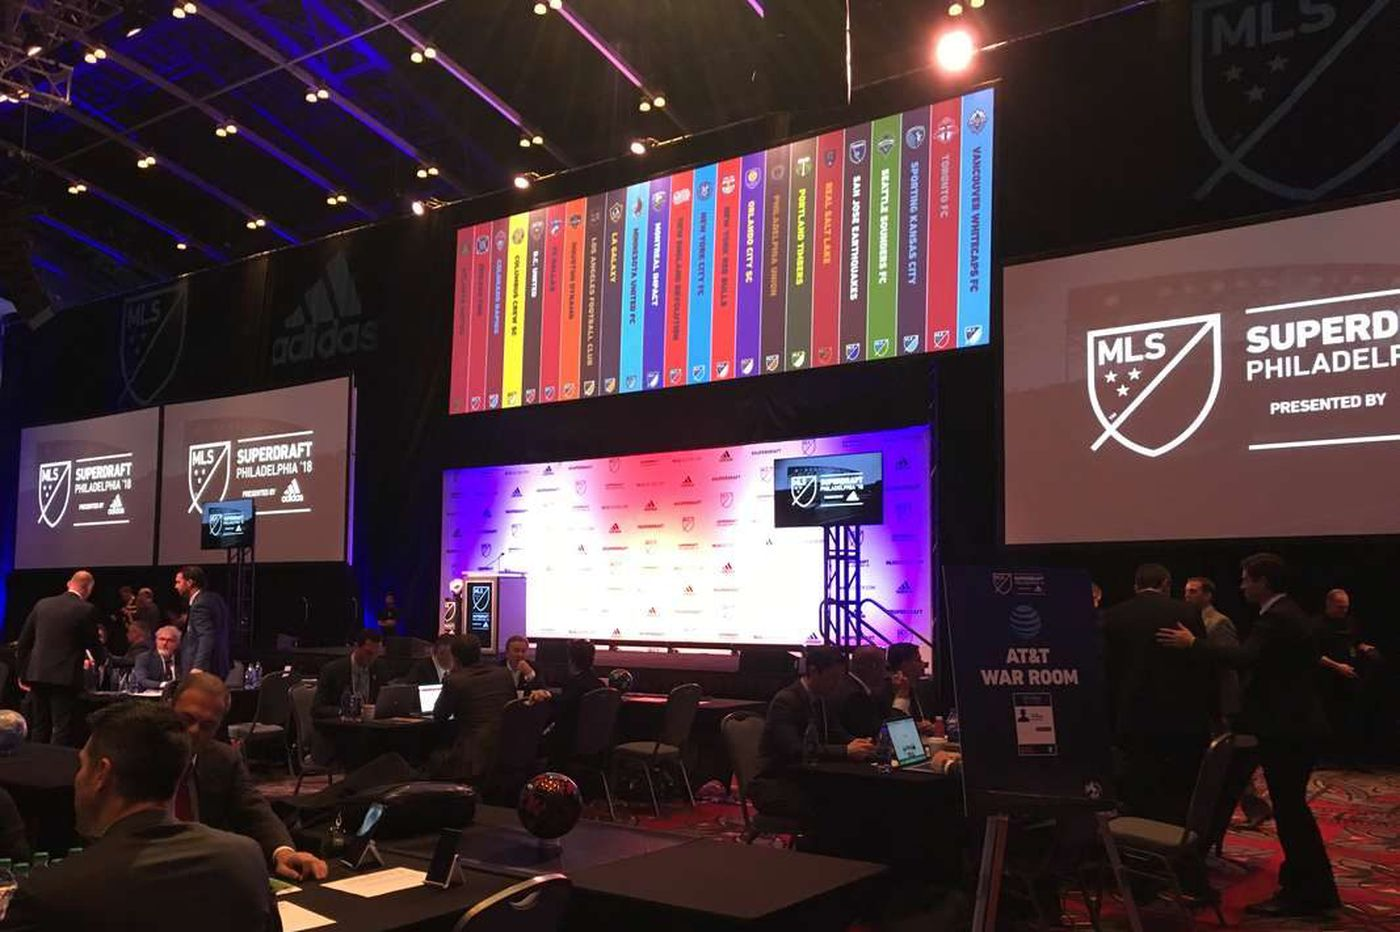 United Soccer Coaches convention in Philadelphia - live updates